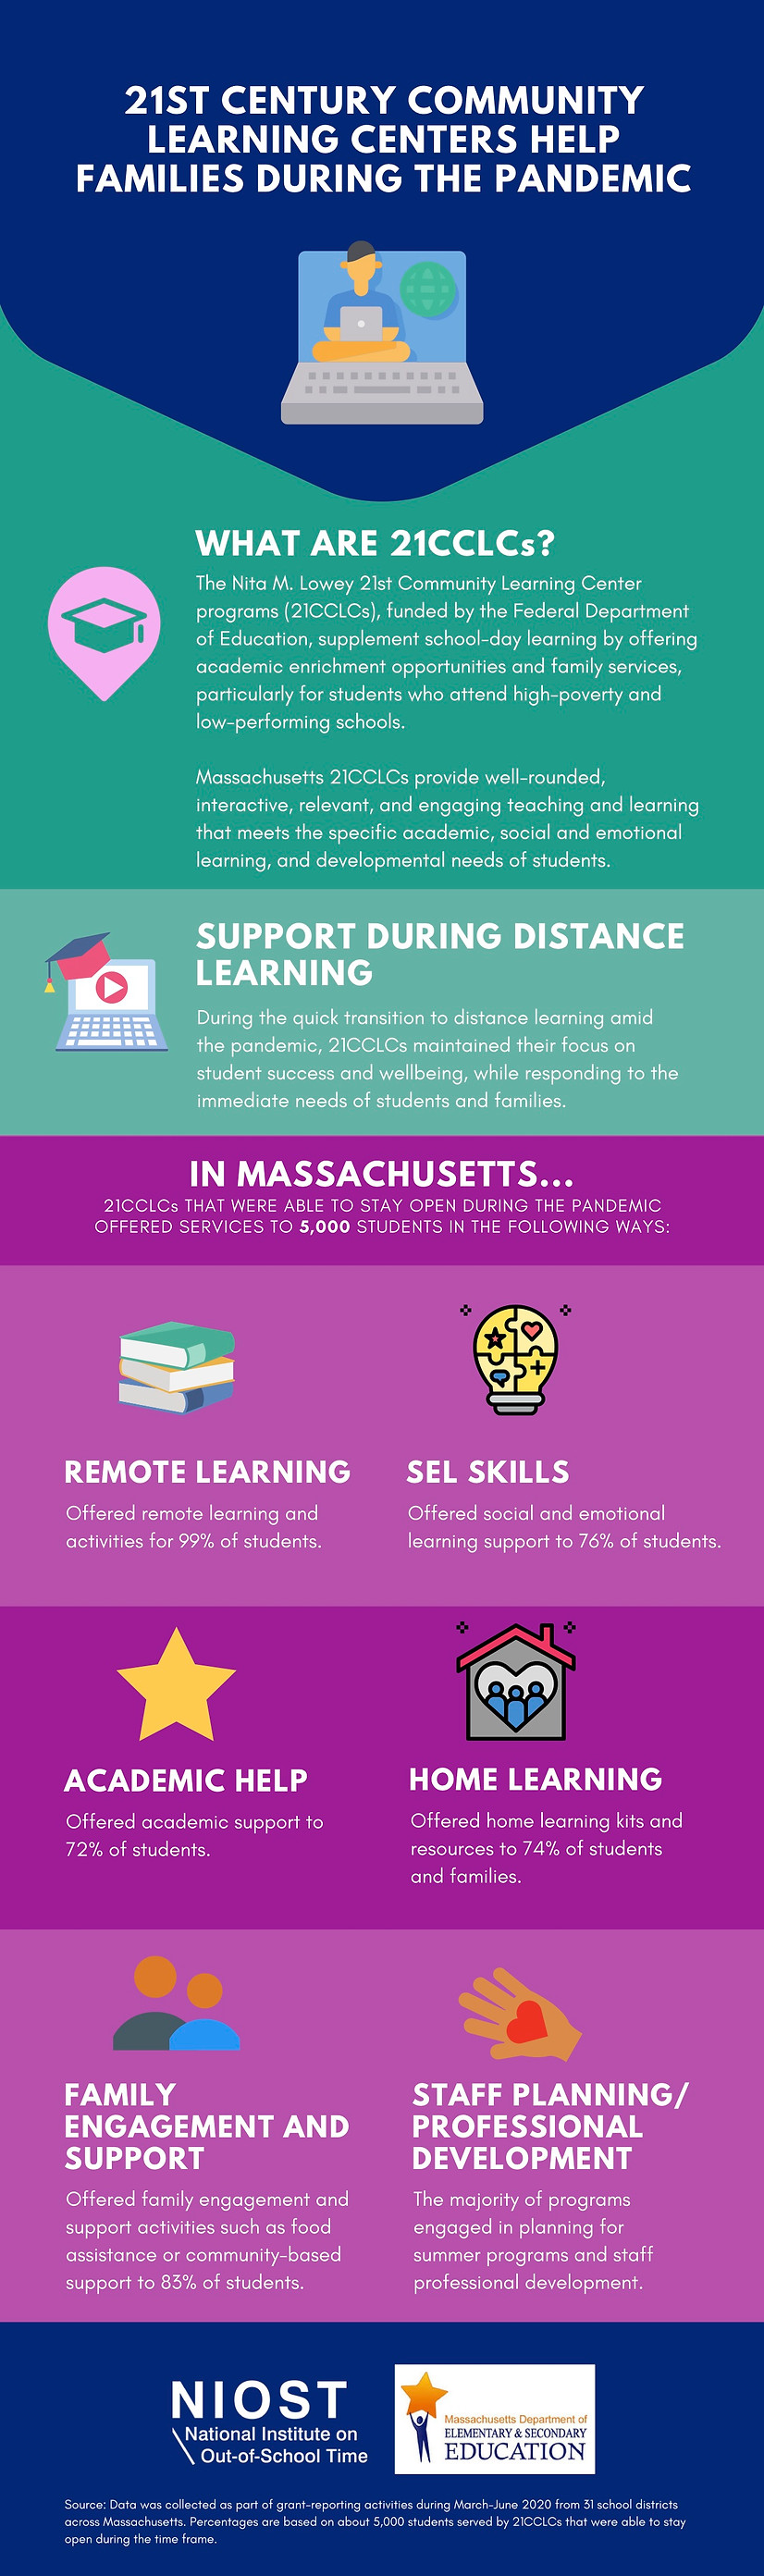 Infographic in English about 21st Century Community Learning Centers